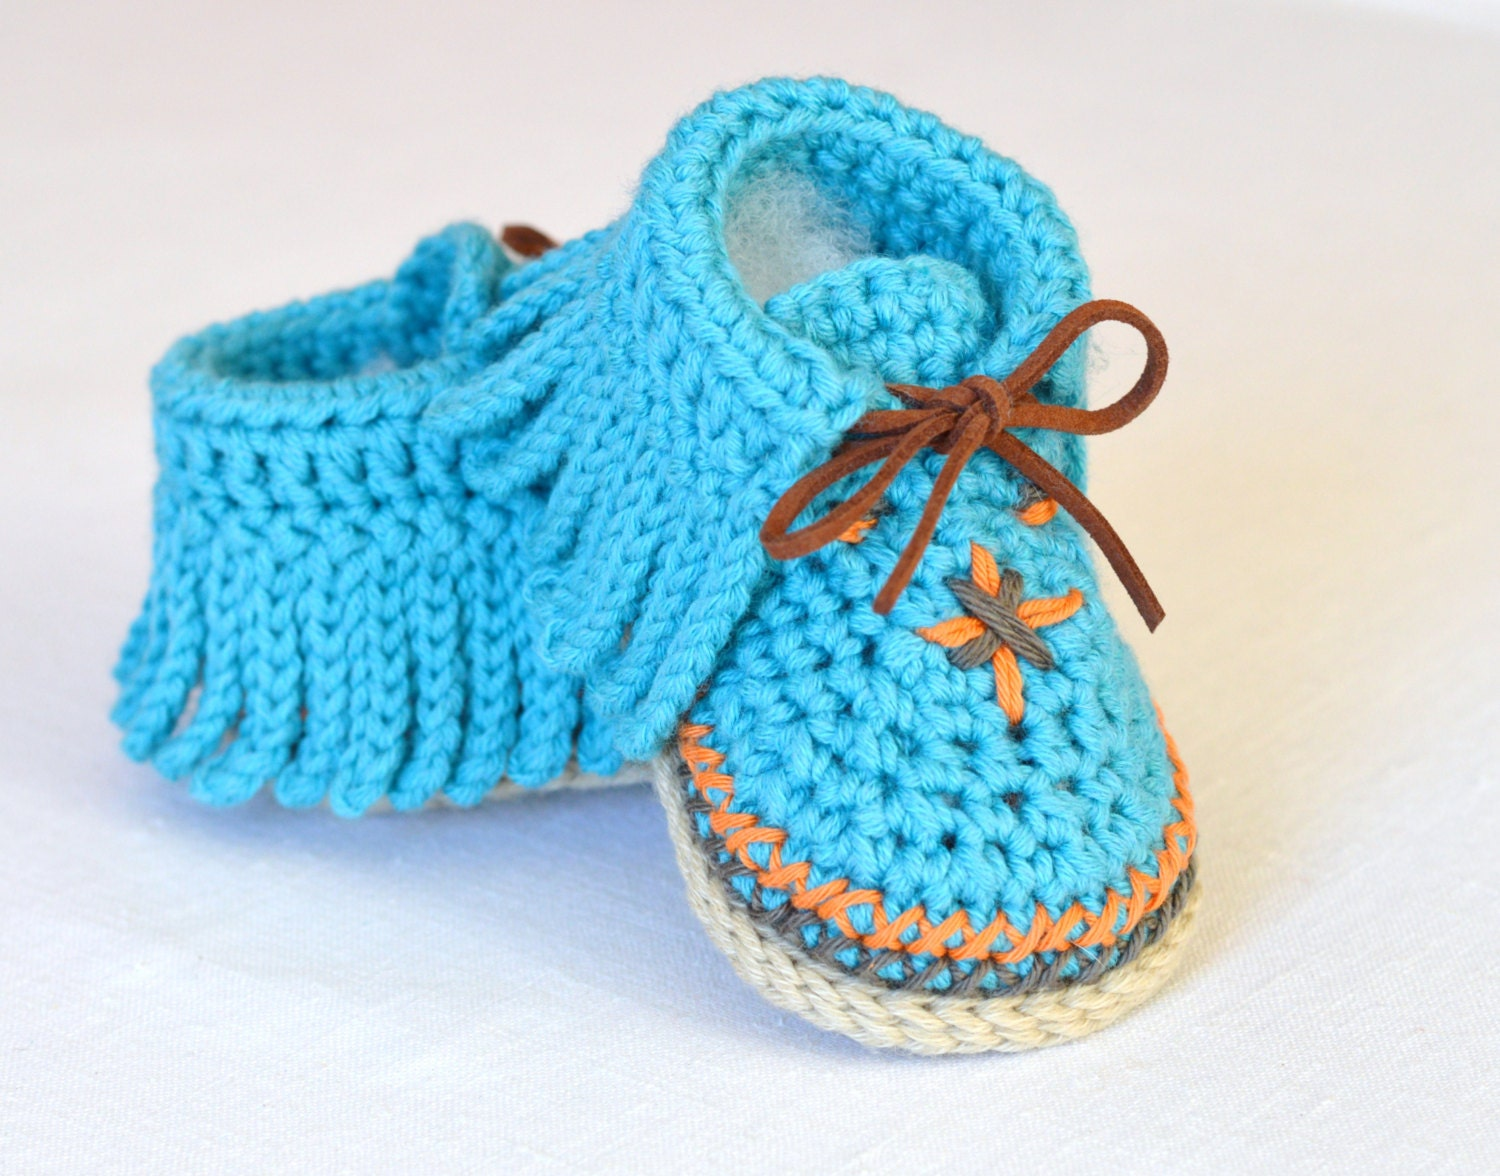 Crochet Pattern Baby Moccasins 3 Sizes Easy Photo Tutorial